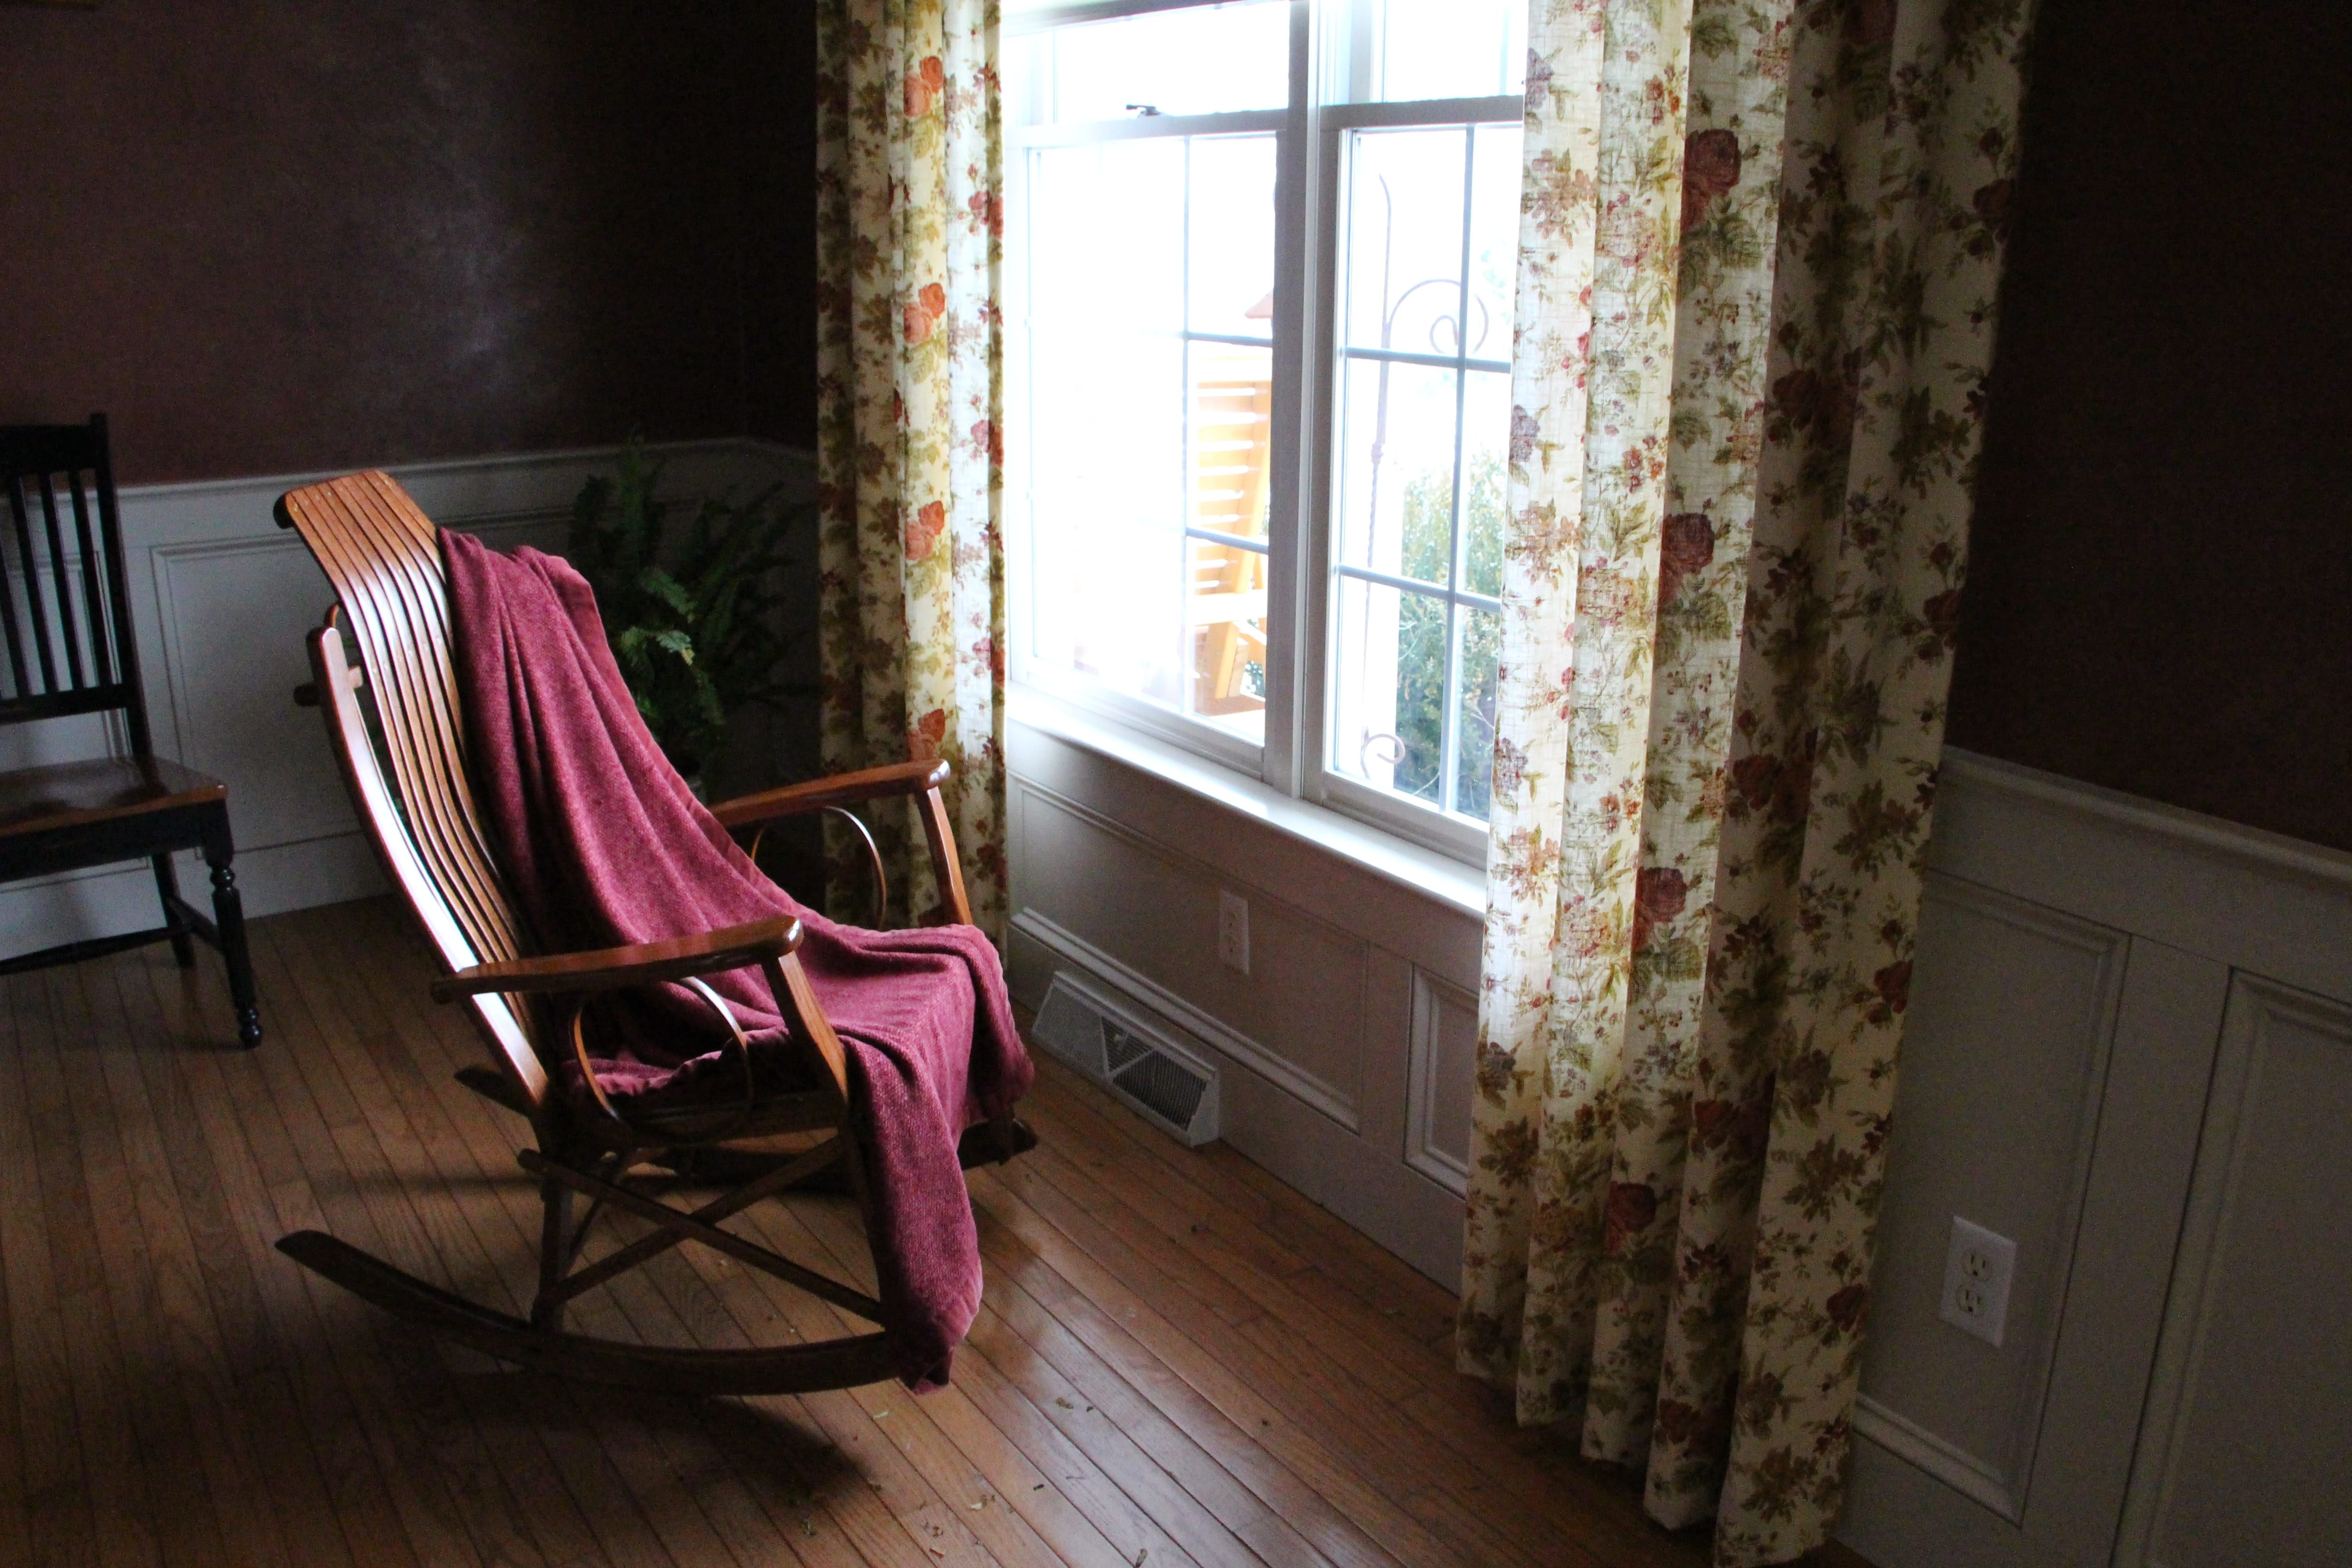 Enjoy The Winter Weather Inside With Peaceful Valley Furniture Rocking  Chair #handcrafted